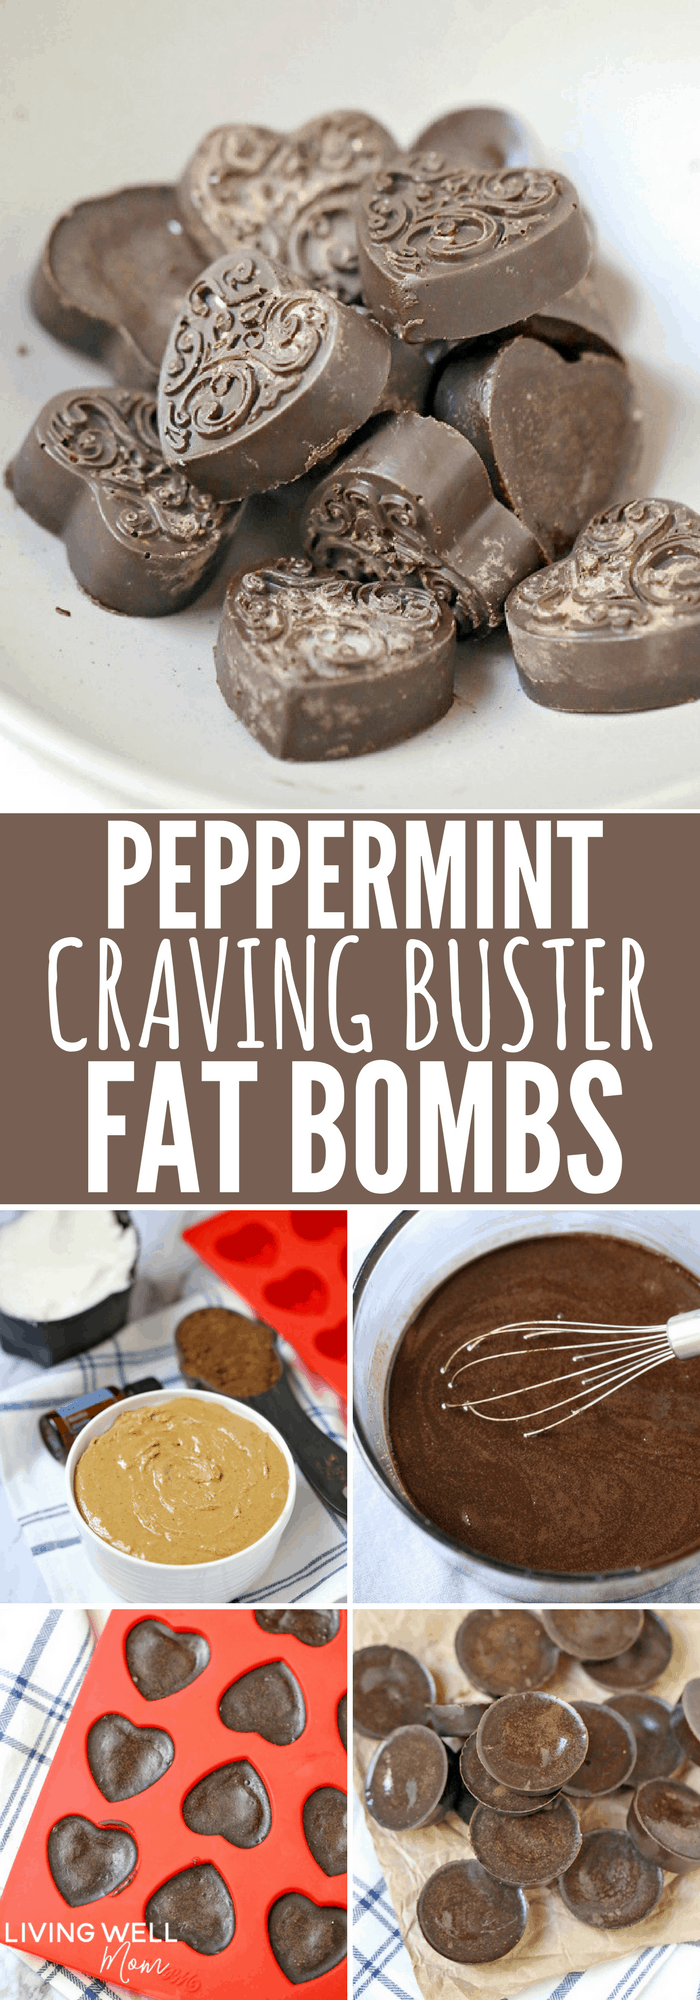 Peppermint Craving Buster Fat Bombs - these simple 4-ingredient fat bombs are quick & easy to make, high fat, low carb and no bake. They're so delicious, it's hard to believe they're sugar-free, dairy-free, and Paleo! #lowcarb #lowcarbrecipes #lowcarbideas #paleorecipes #nobake #dairyfree #glutenfree #sugarfree